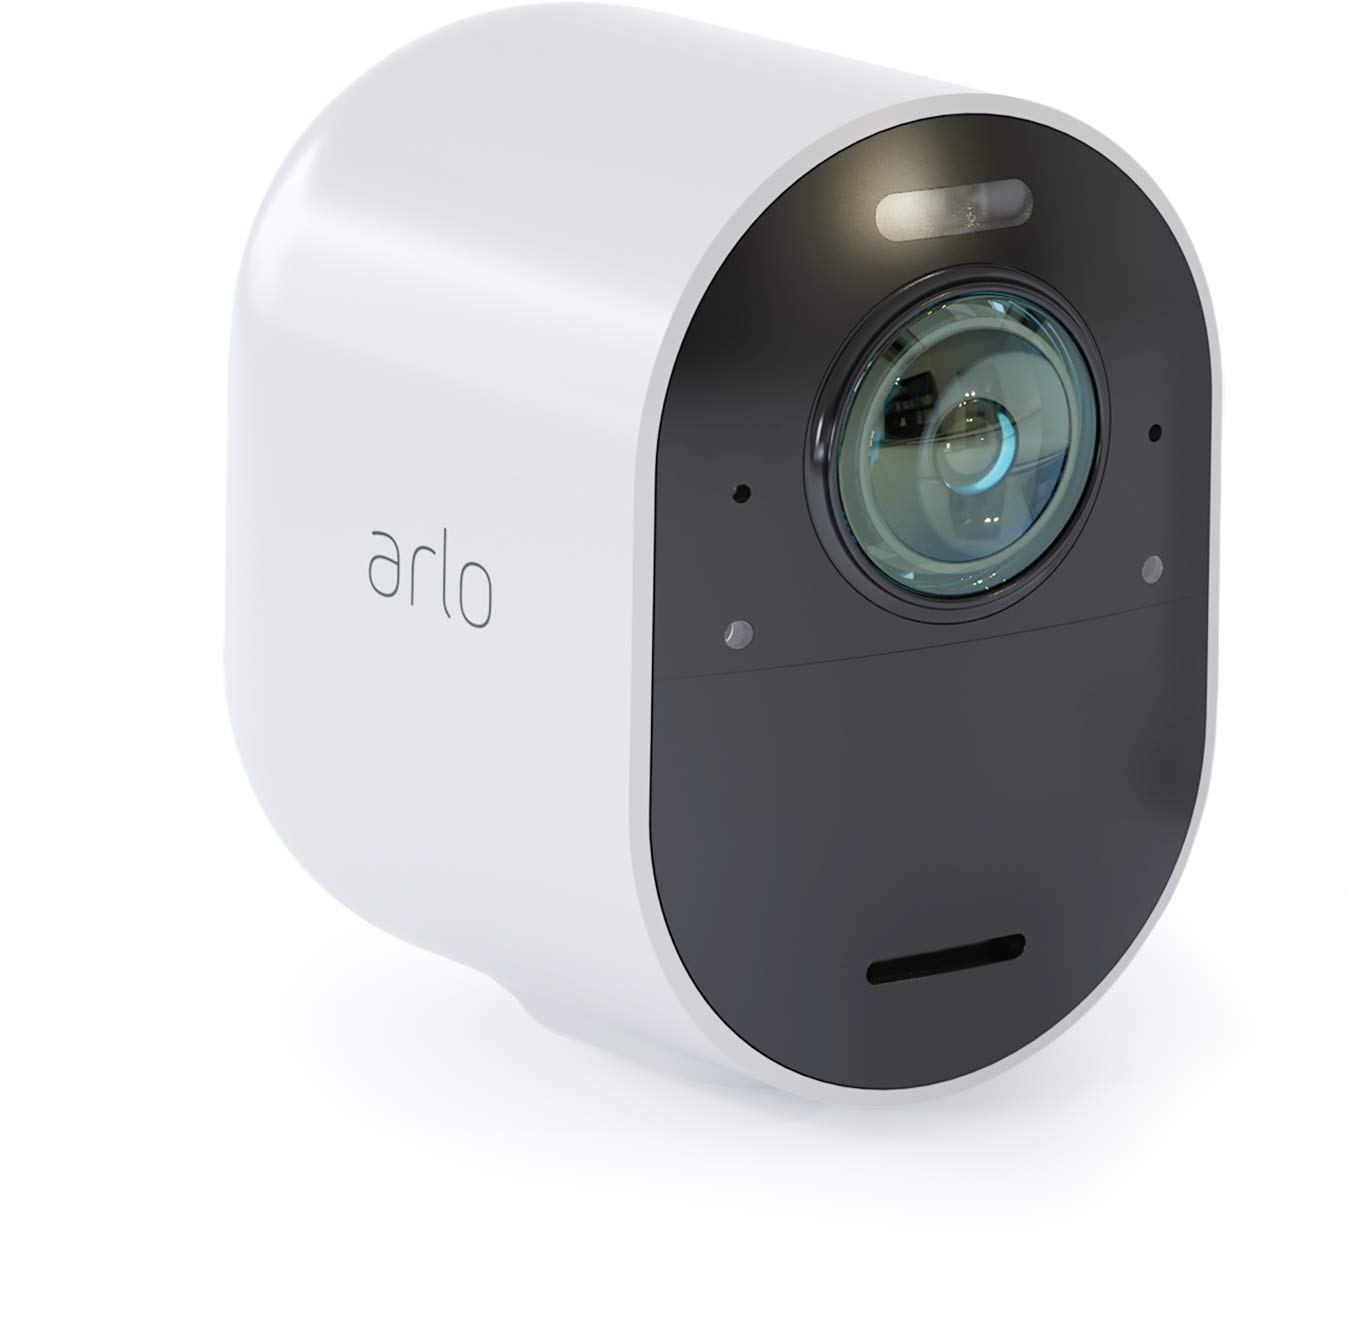 Arlo Ultra - 4K UHD Wire-Free Security Add-on Camera | Indoor/Outdoor Security Camera with Color Night Vision, 180° View | Requires an Ultra SmartHub, sold separately | Works with Alexa | (VMC5040) by Arlo Technologies, Inc